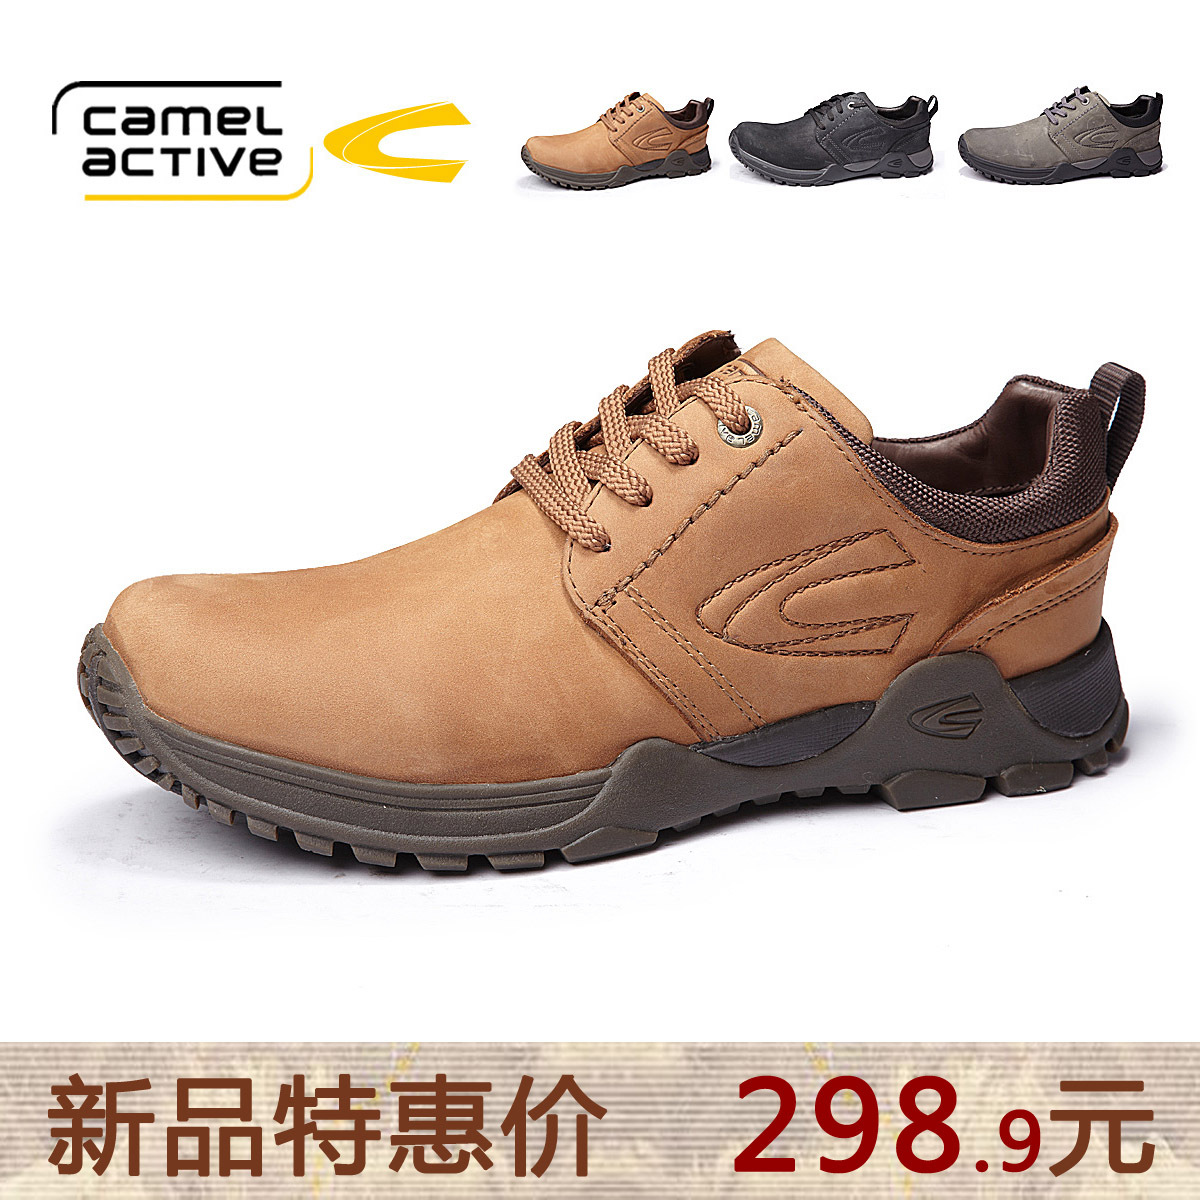 Taobao Camel Active Germany camel city counter genuine casual walking shoes  men's shoes clearance climbing shoes china english wholesale